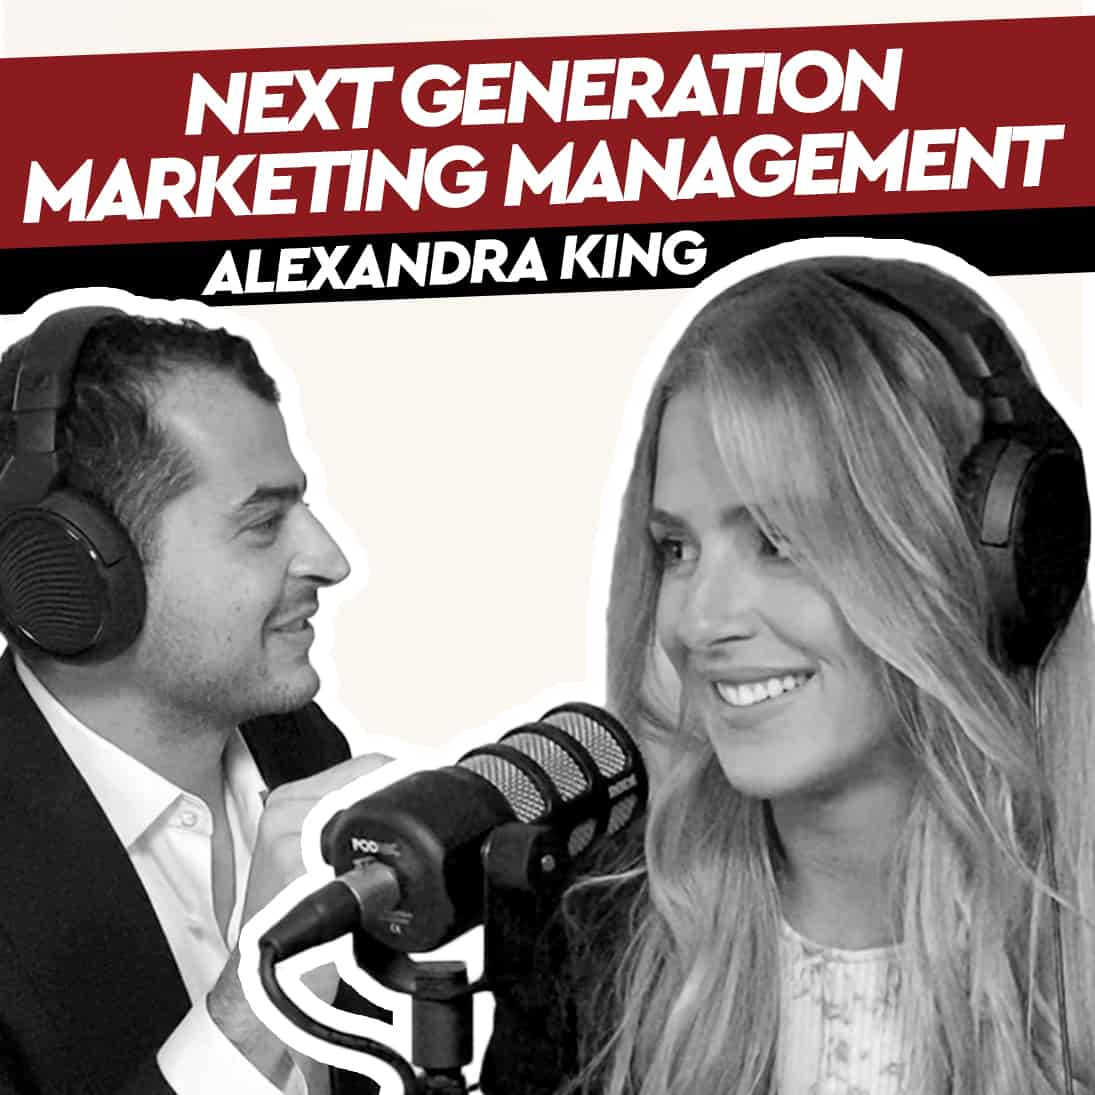 Alexandra King – Next Generation Marketing Management